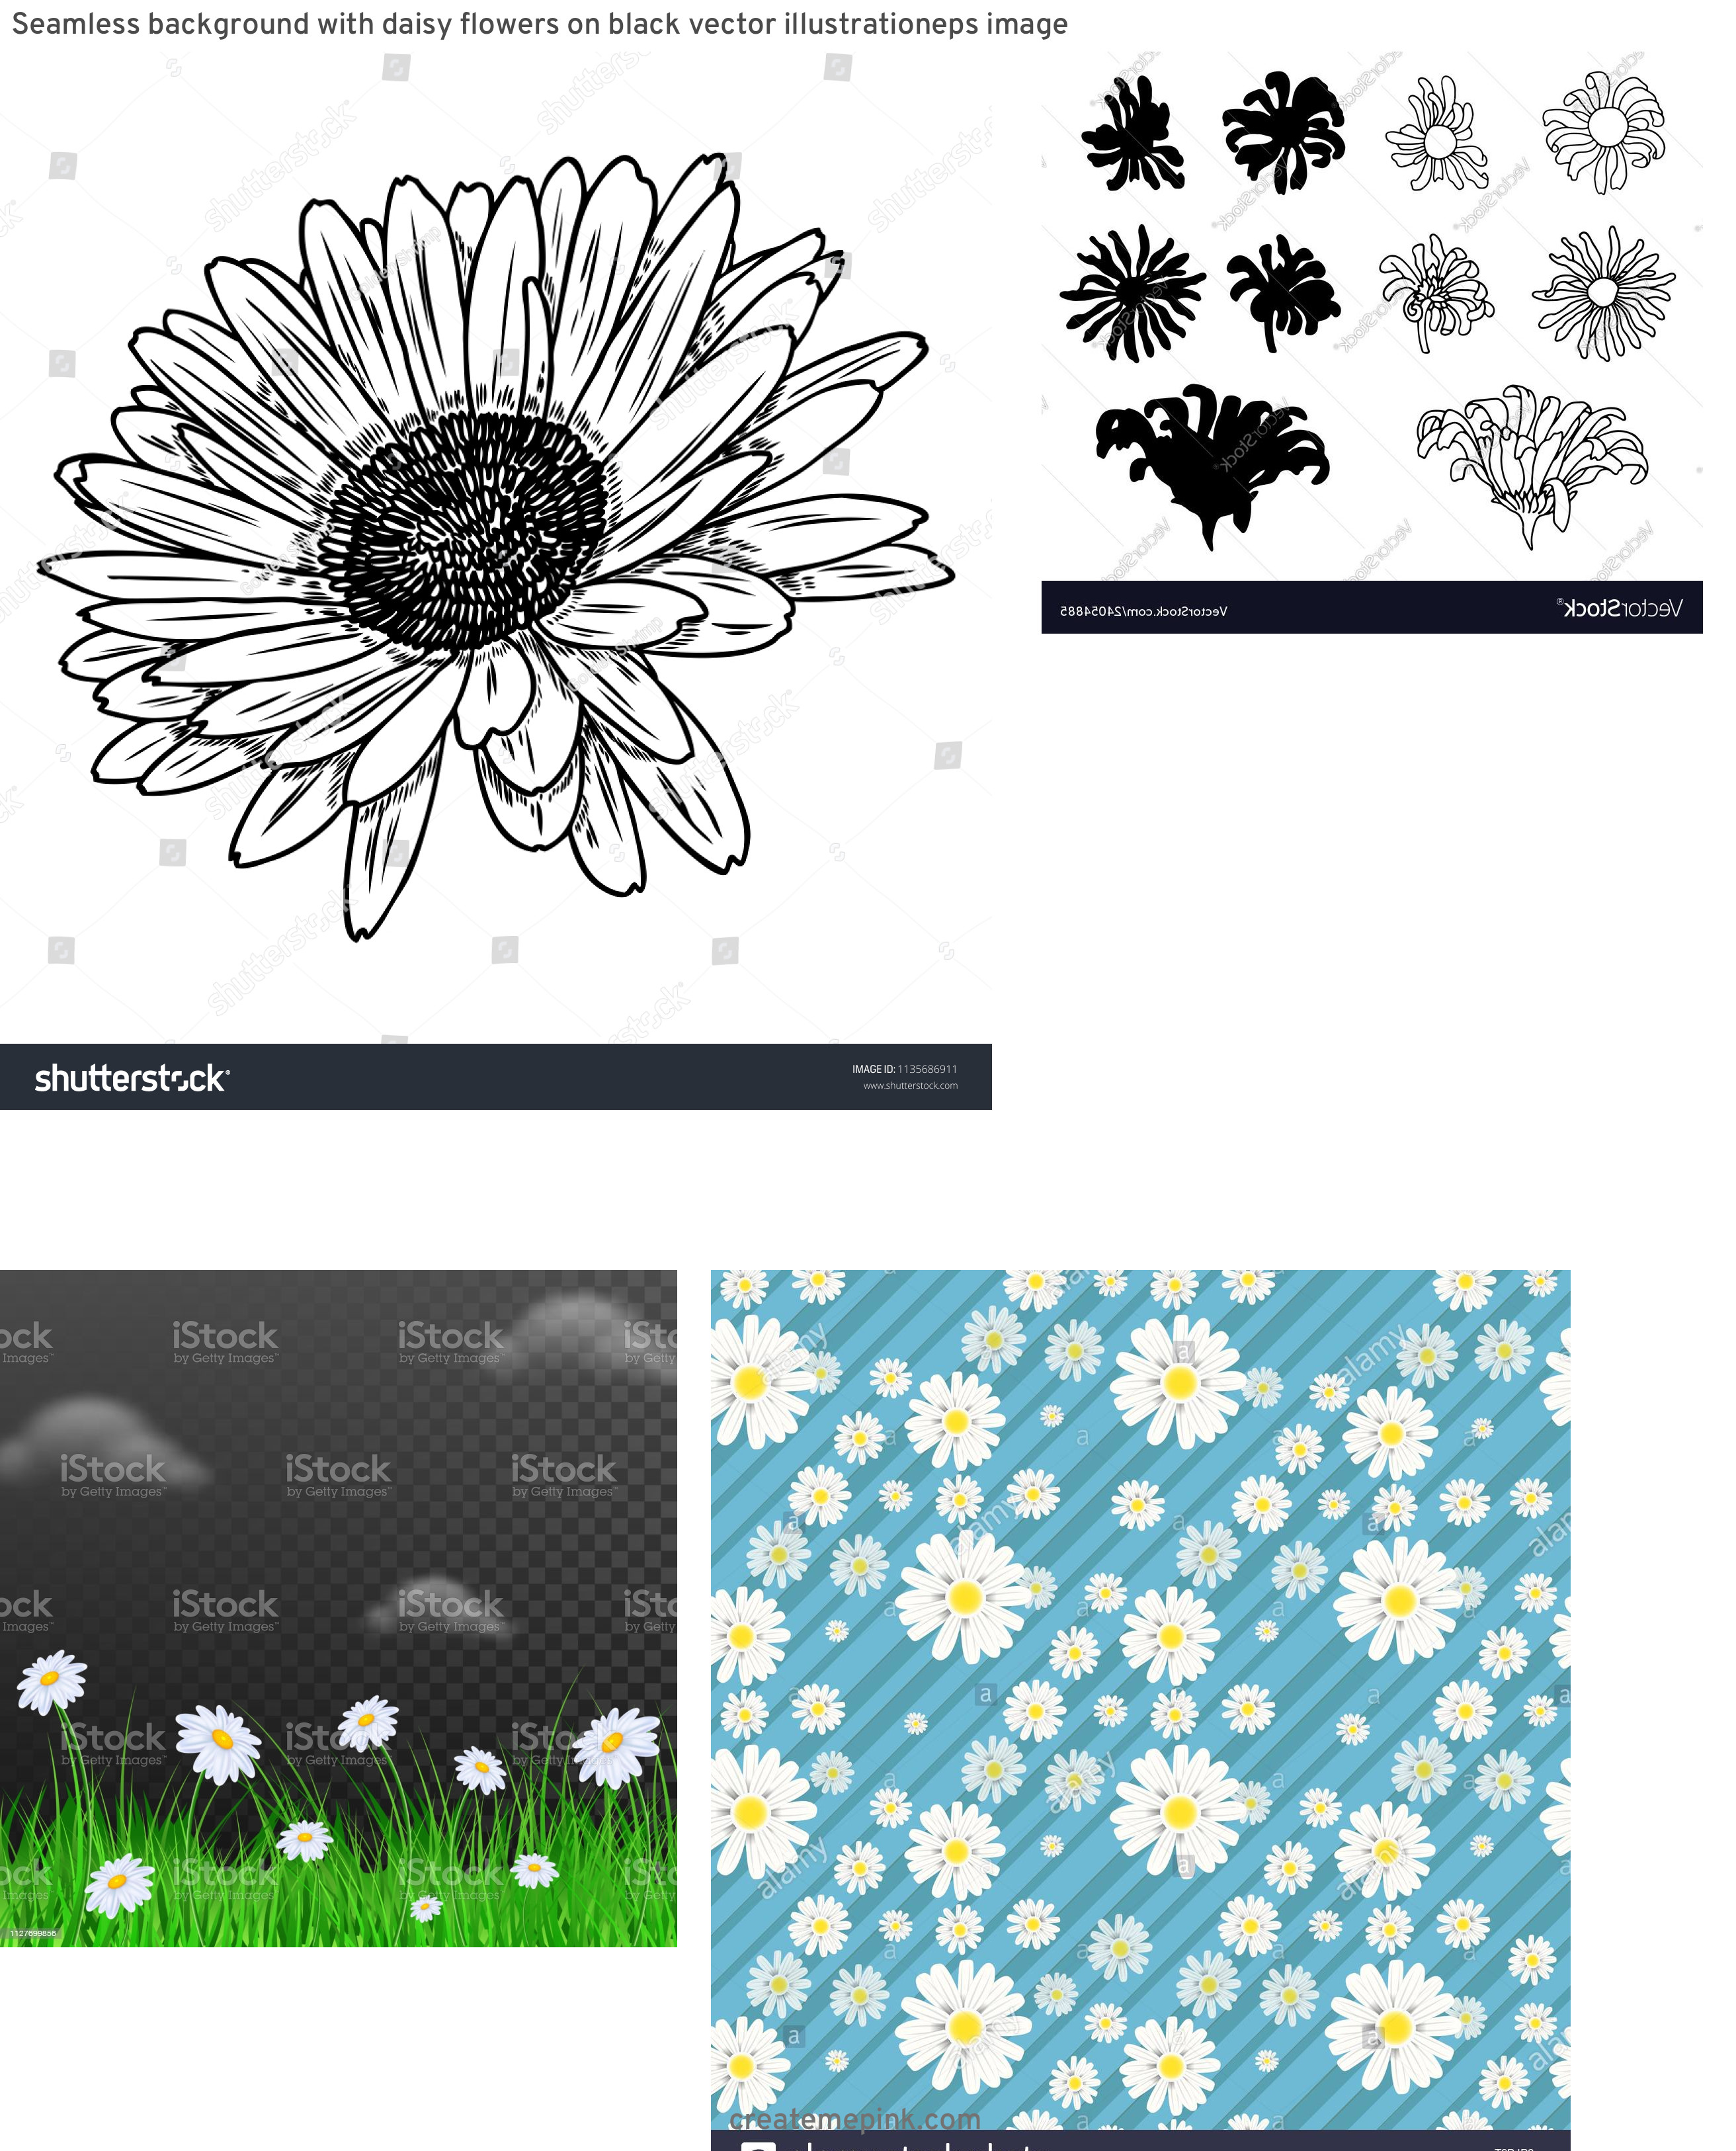 Flower Daisey Black Vector Art: Seamless Background With Daisy Flowers On Black Vector Illustrationeps Image